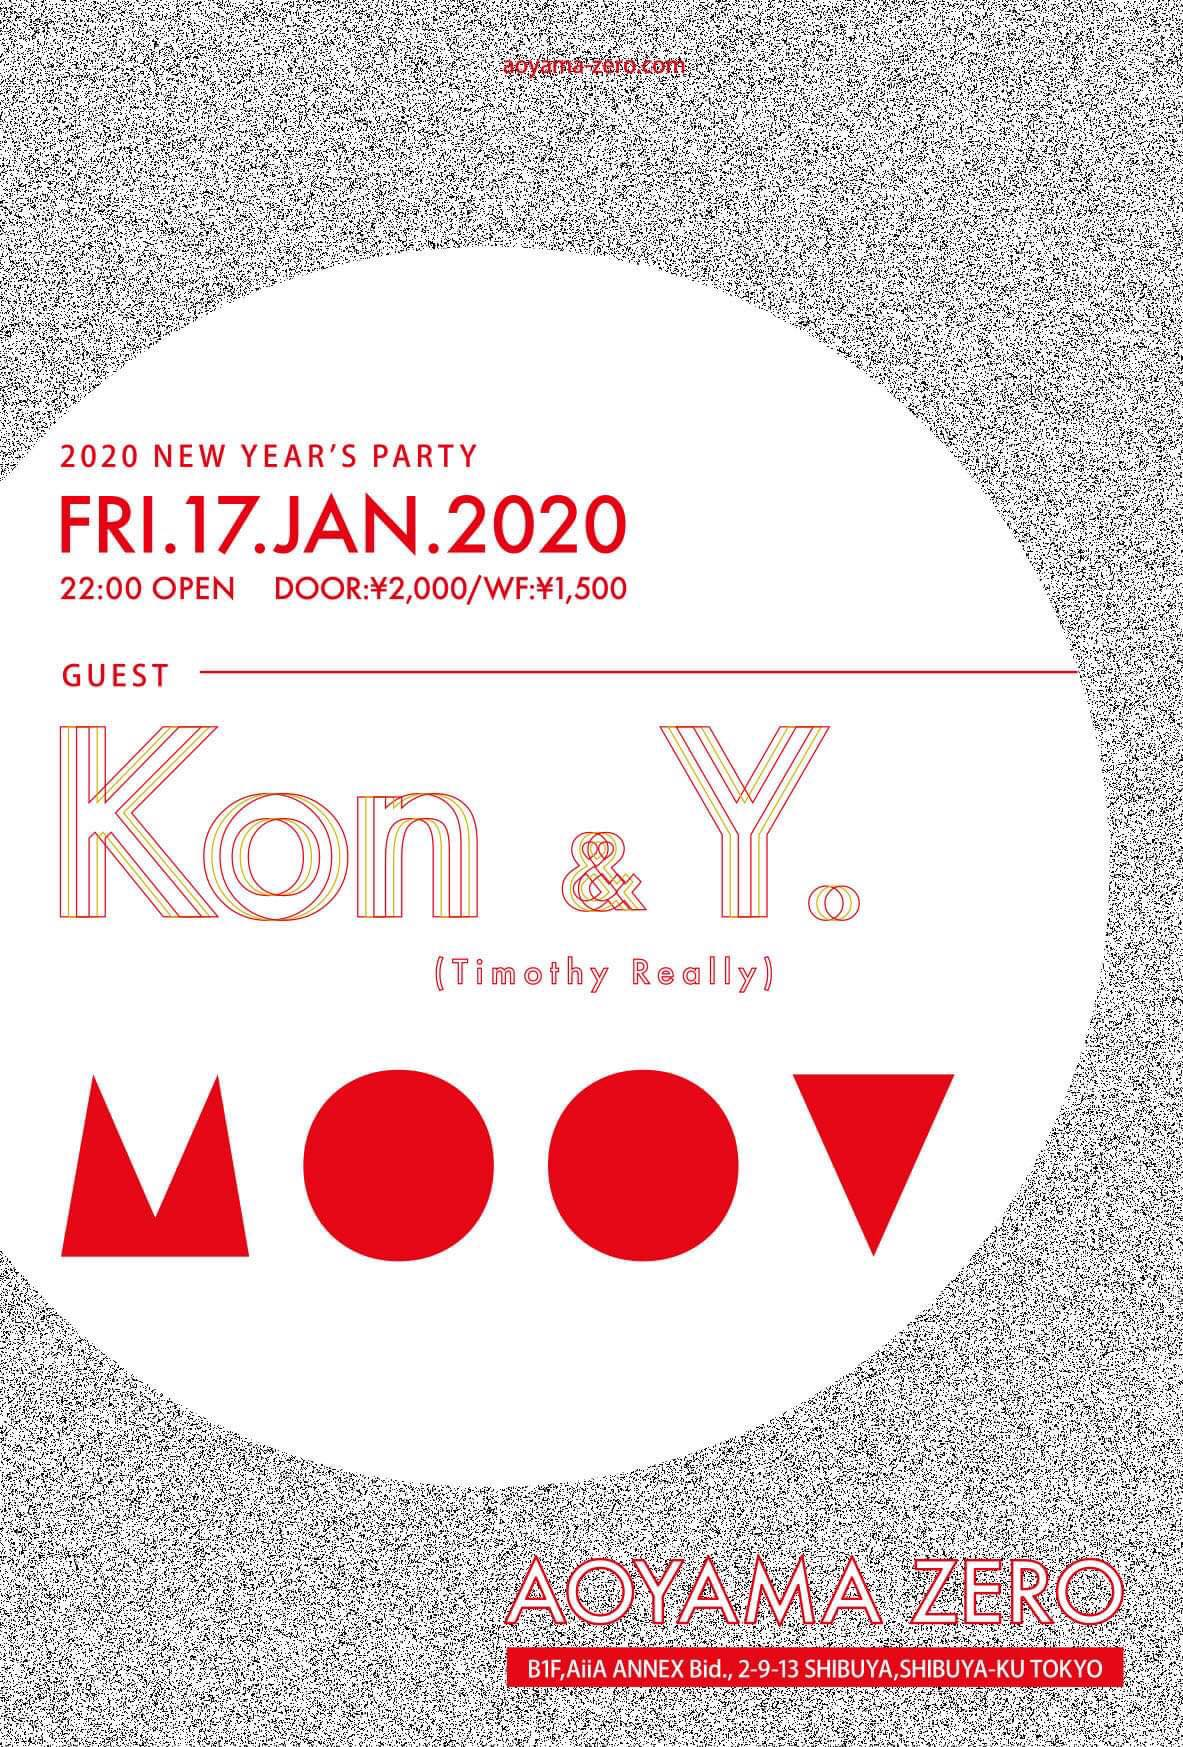 MOOV NEW YEAR'S PARTY